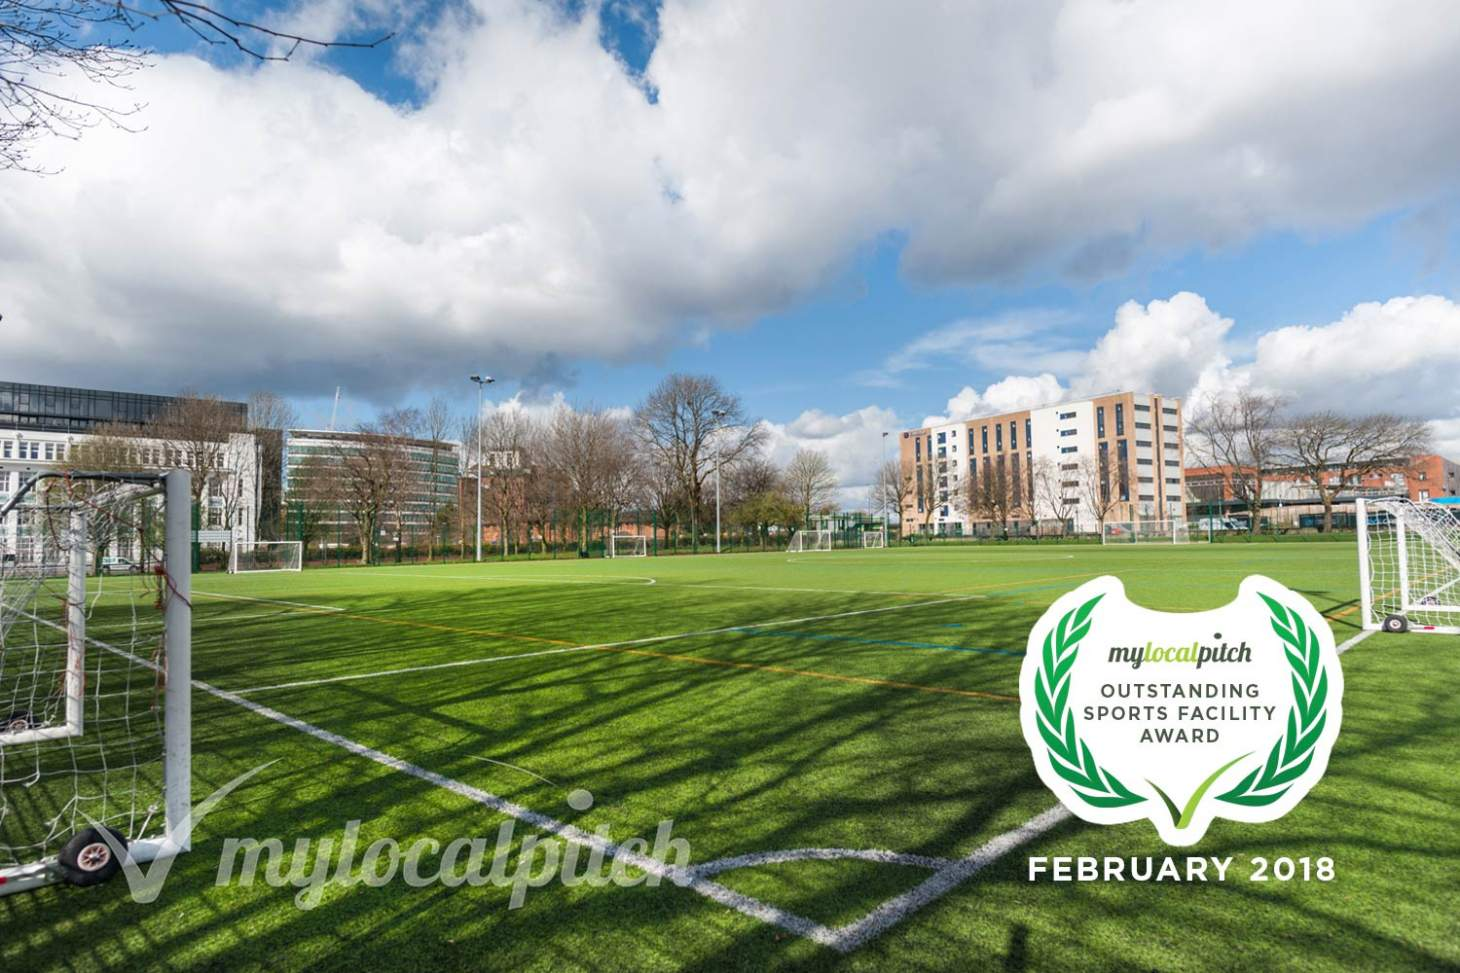 Ordsall Leisure Centre 7 a side | 3G Astroturf football pitch